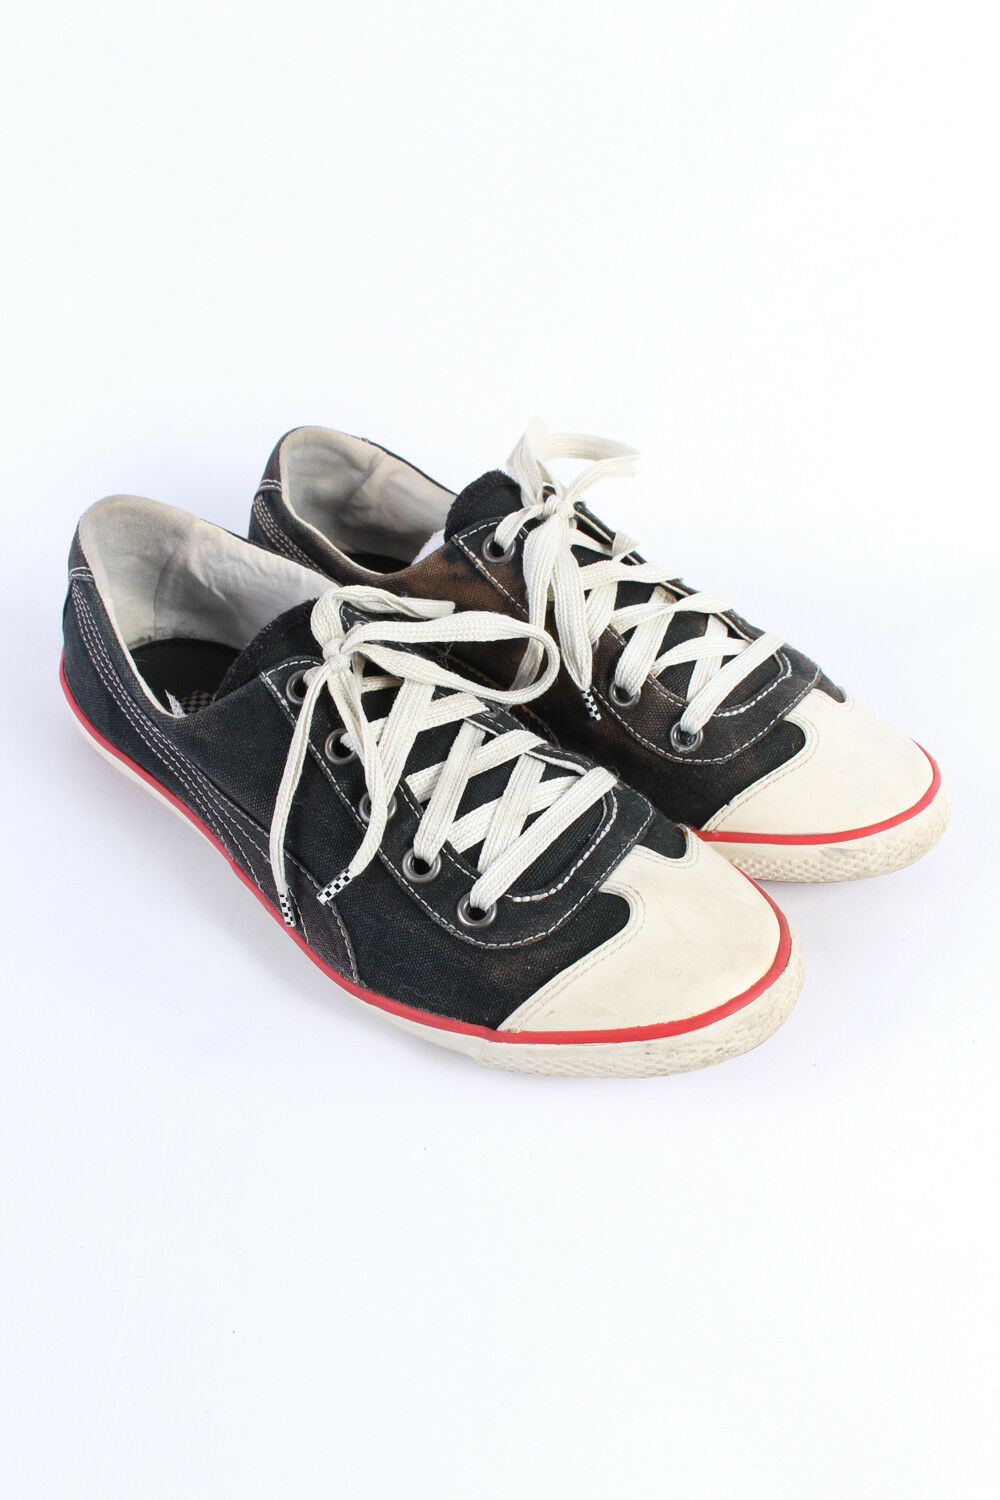 Men's Vintage 70s 80s Puma Fast Rider Trainers shoes Size S143